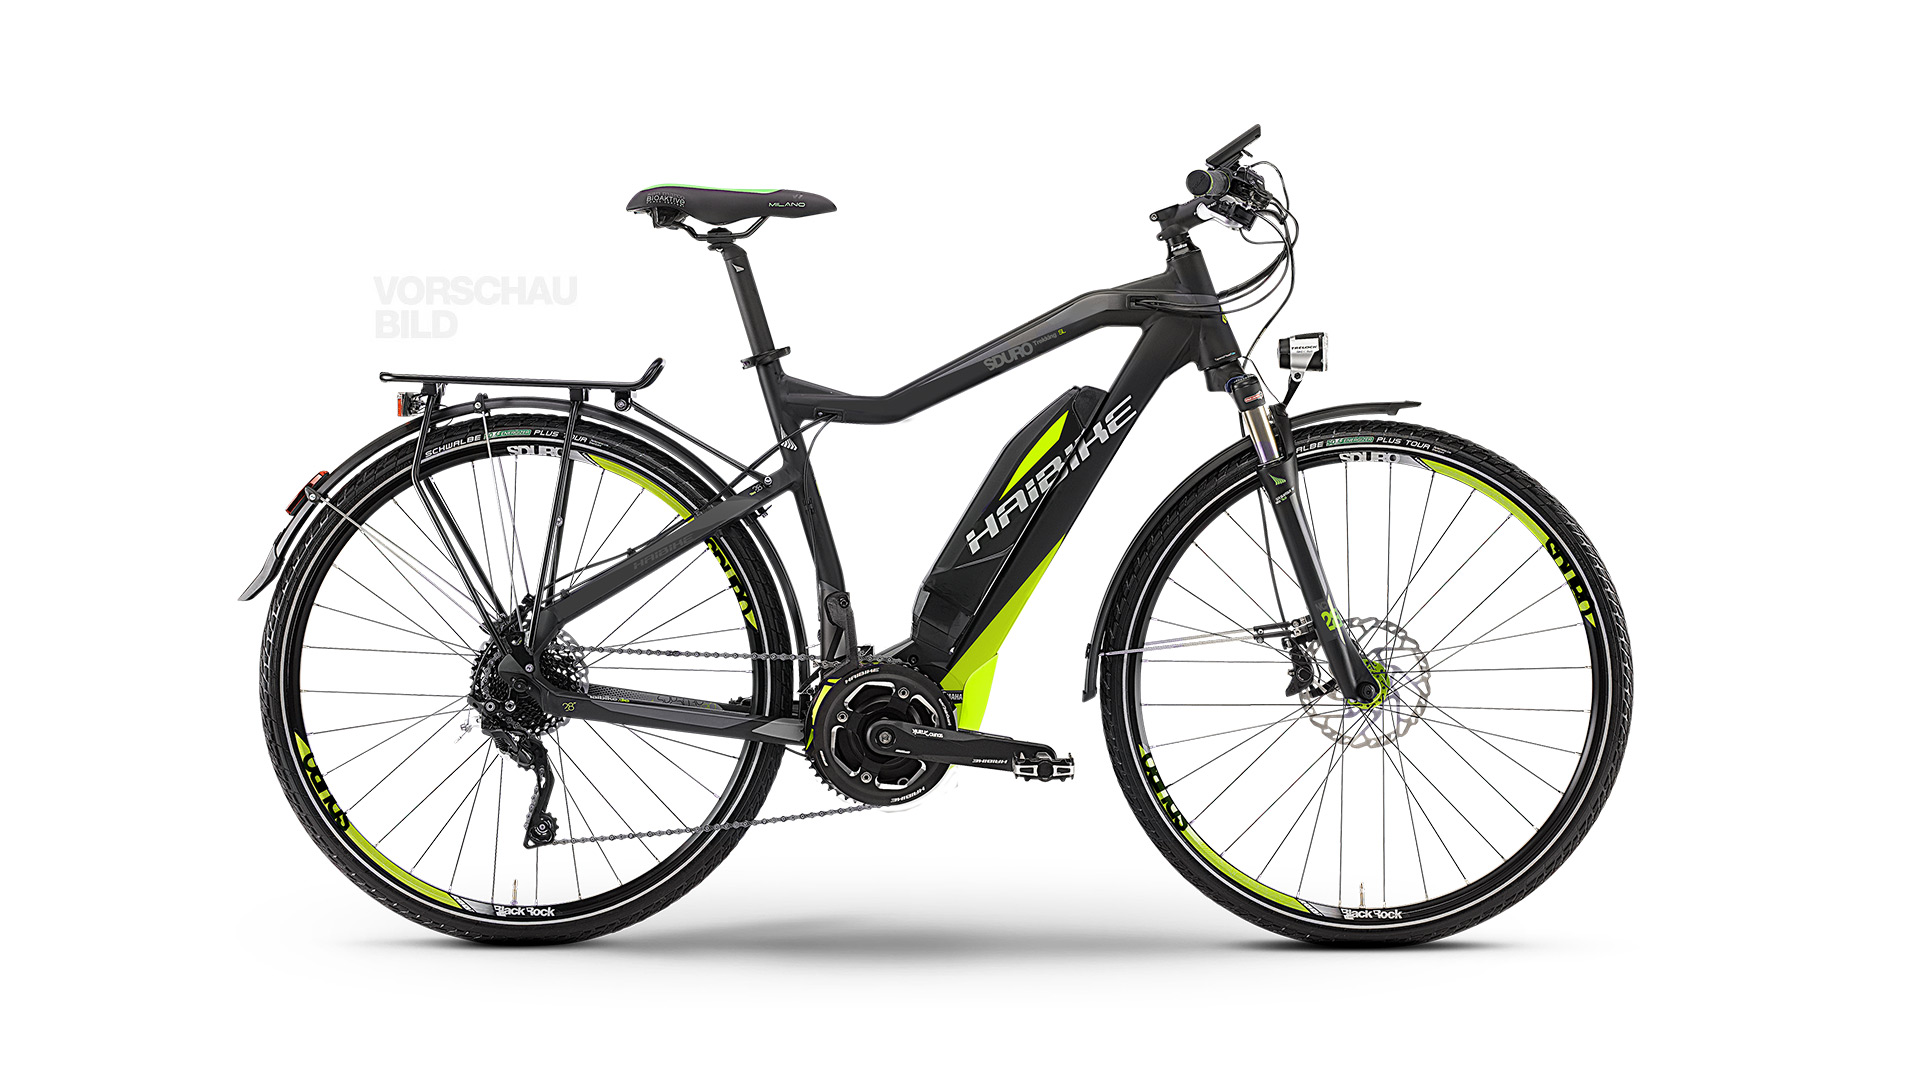 802d7769ecf 2016 HAIBIKE SDURO TREKKING SL (HIGH STEP) - EBIKE BLOWOUT